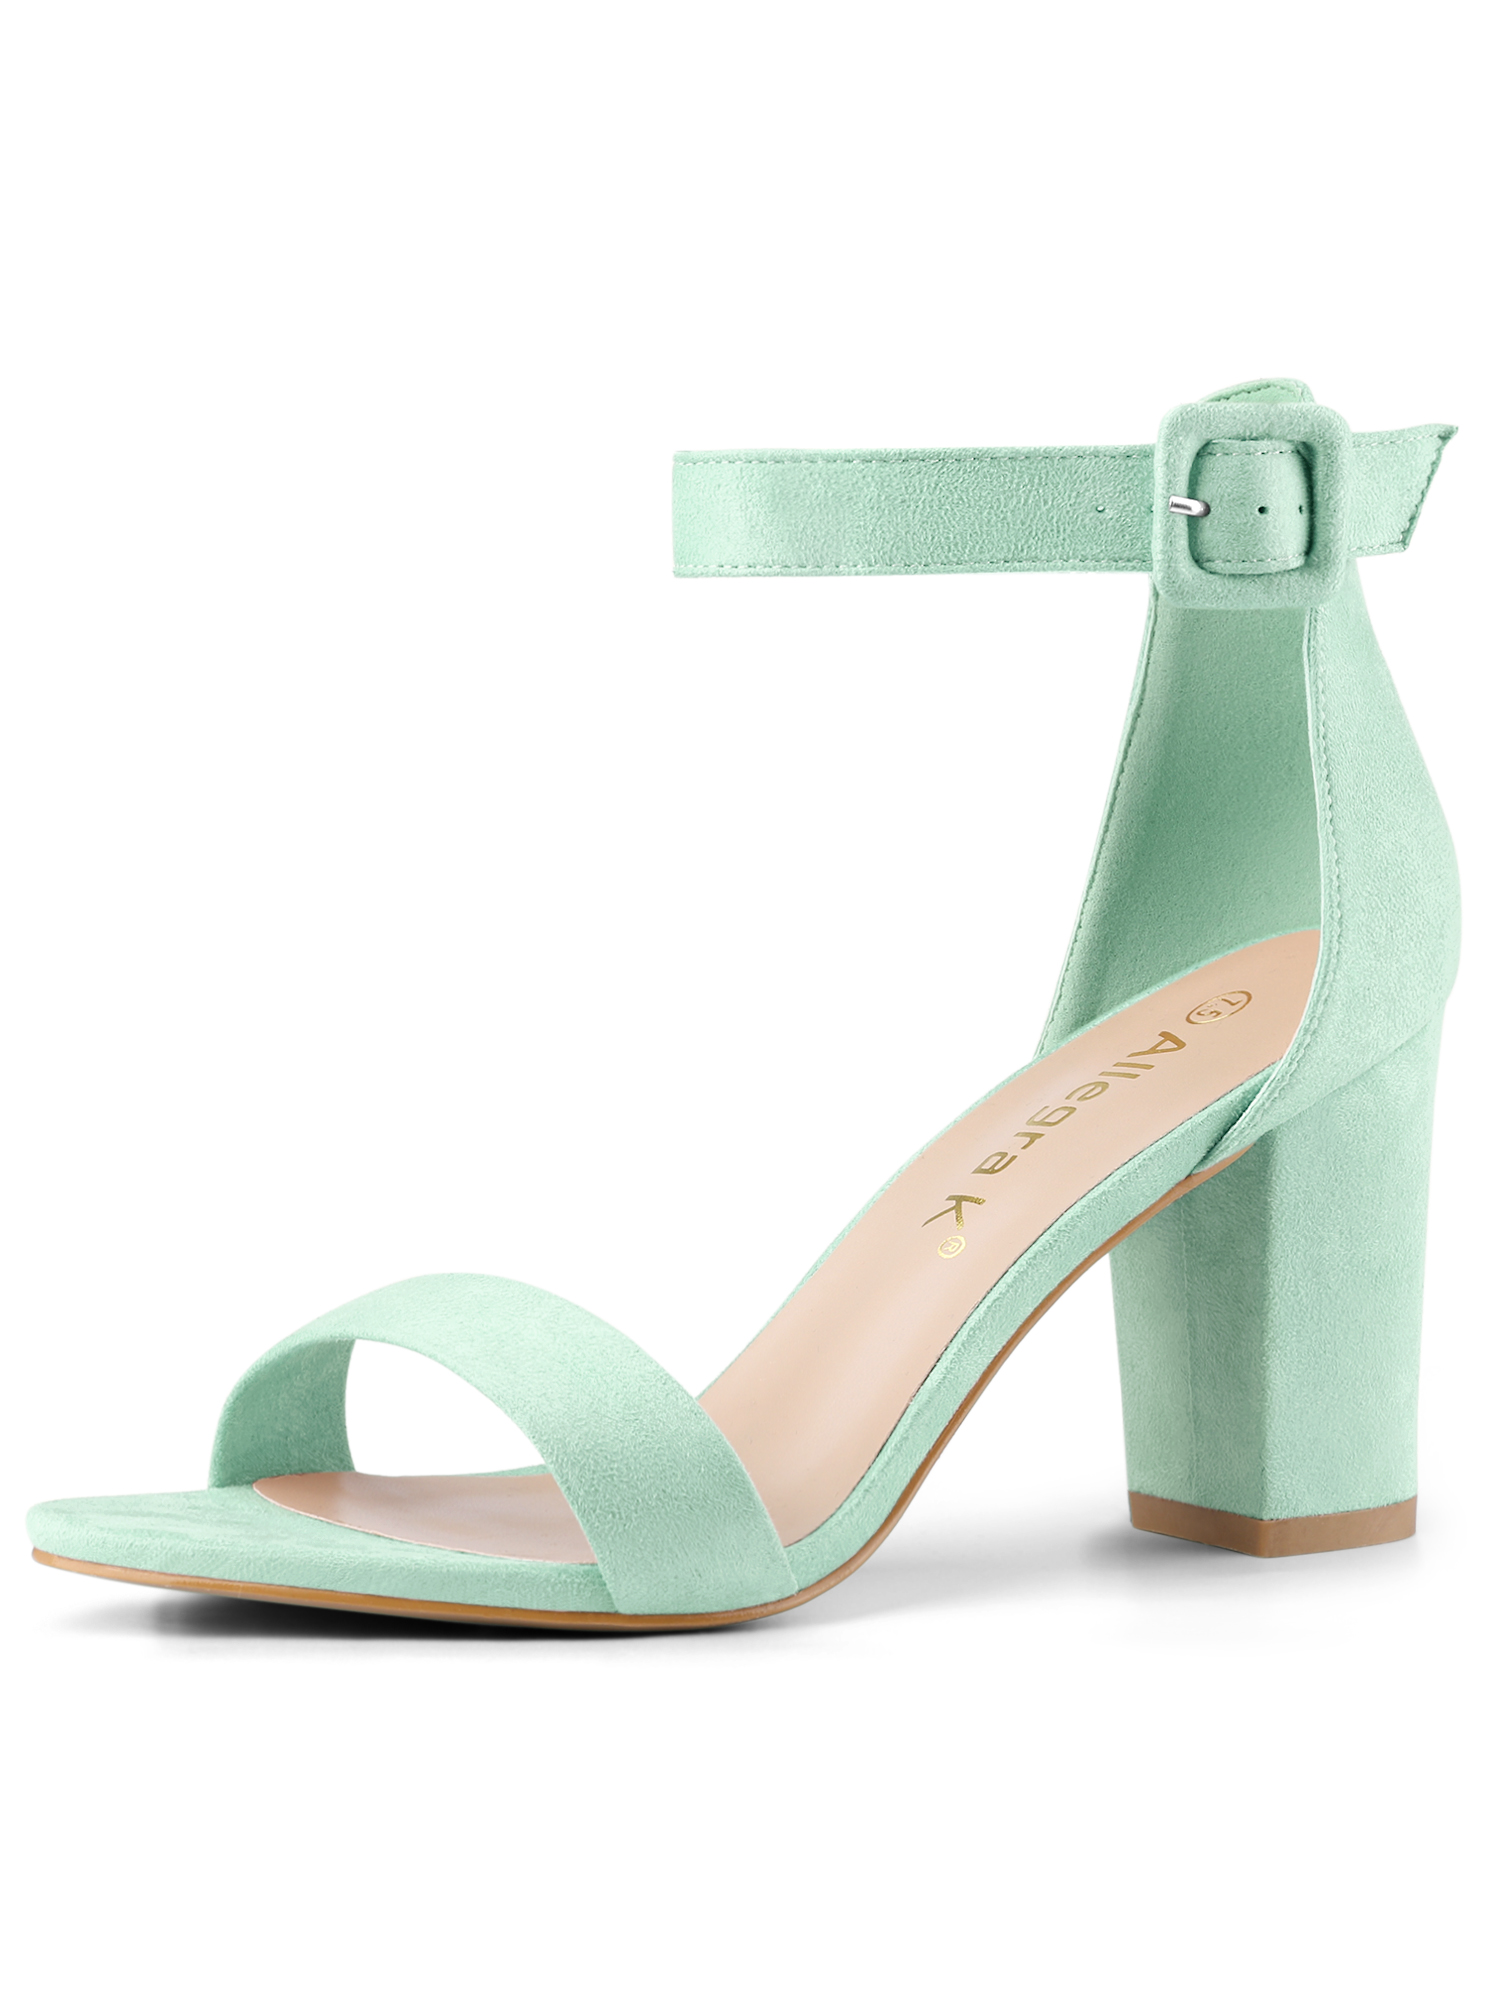 284H Woman Open Toe Chunky High Heel Ankle Strap Sandals Light Green/US 11.5